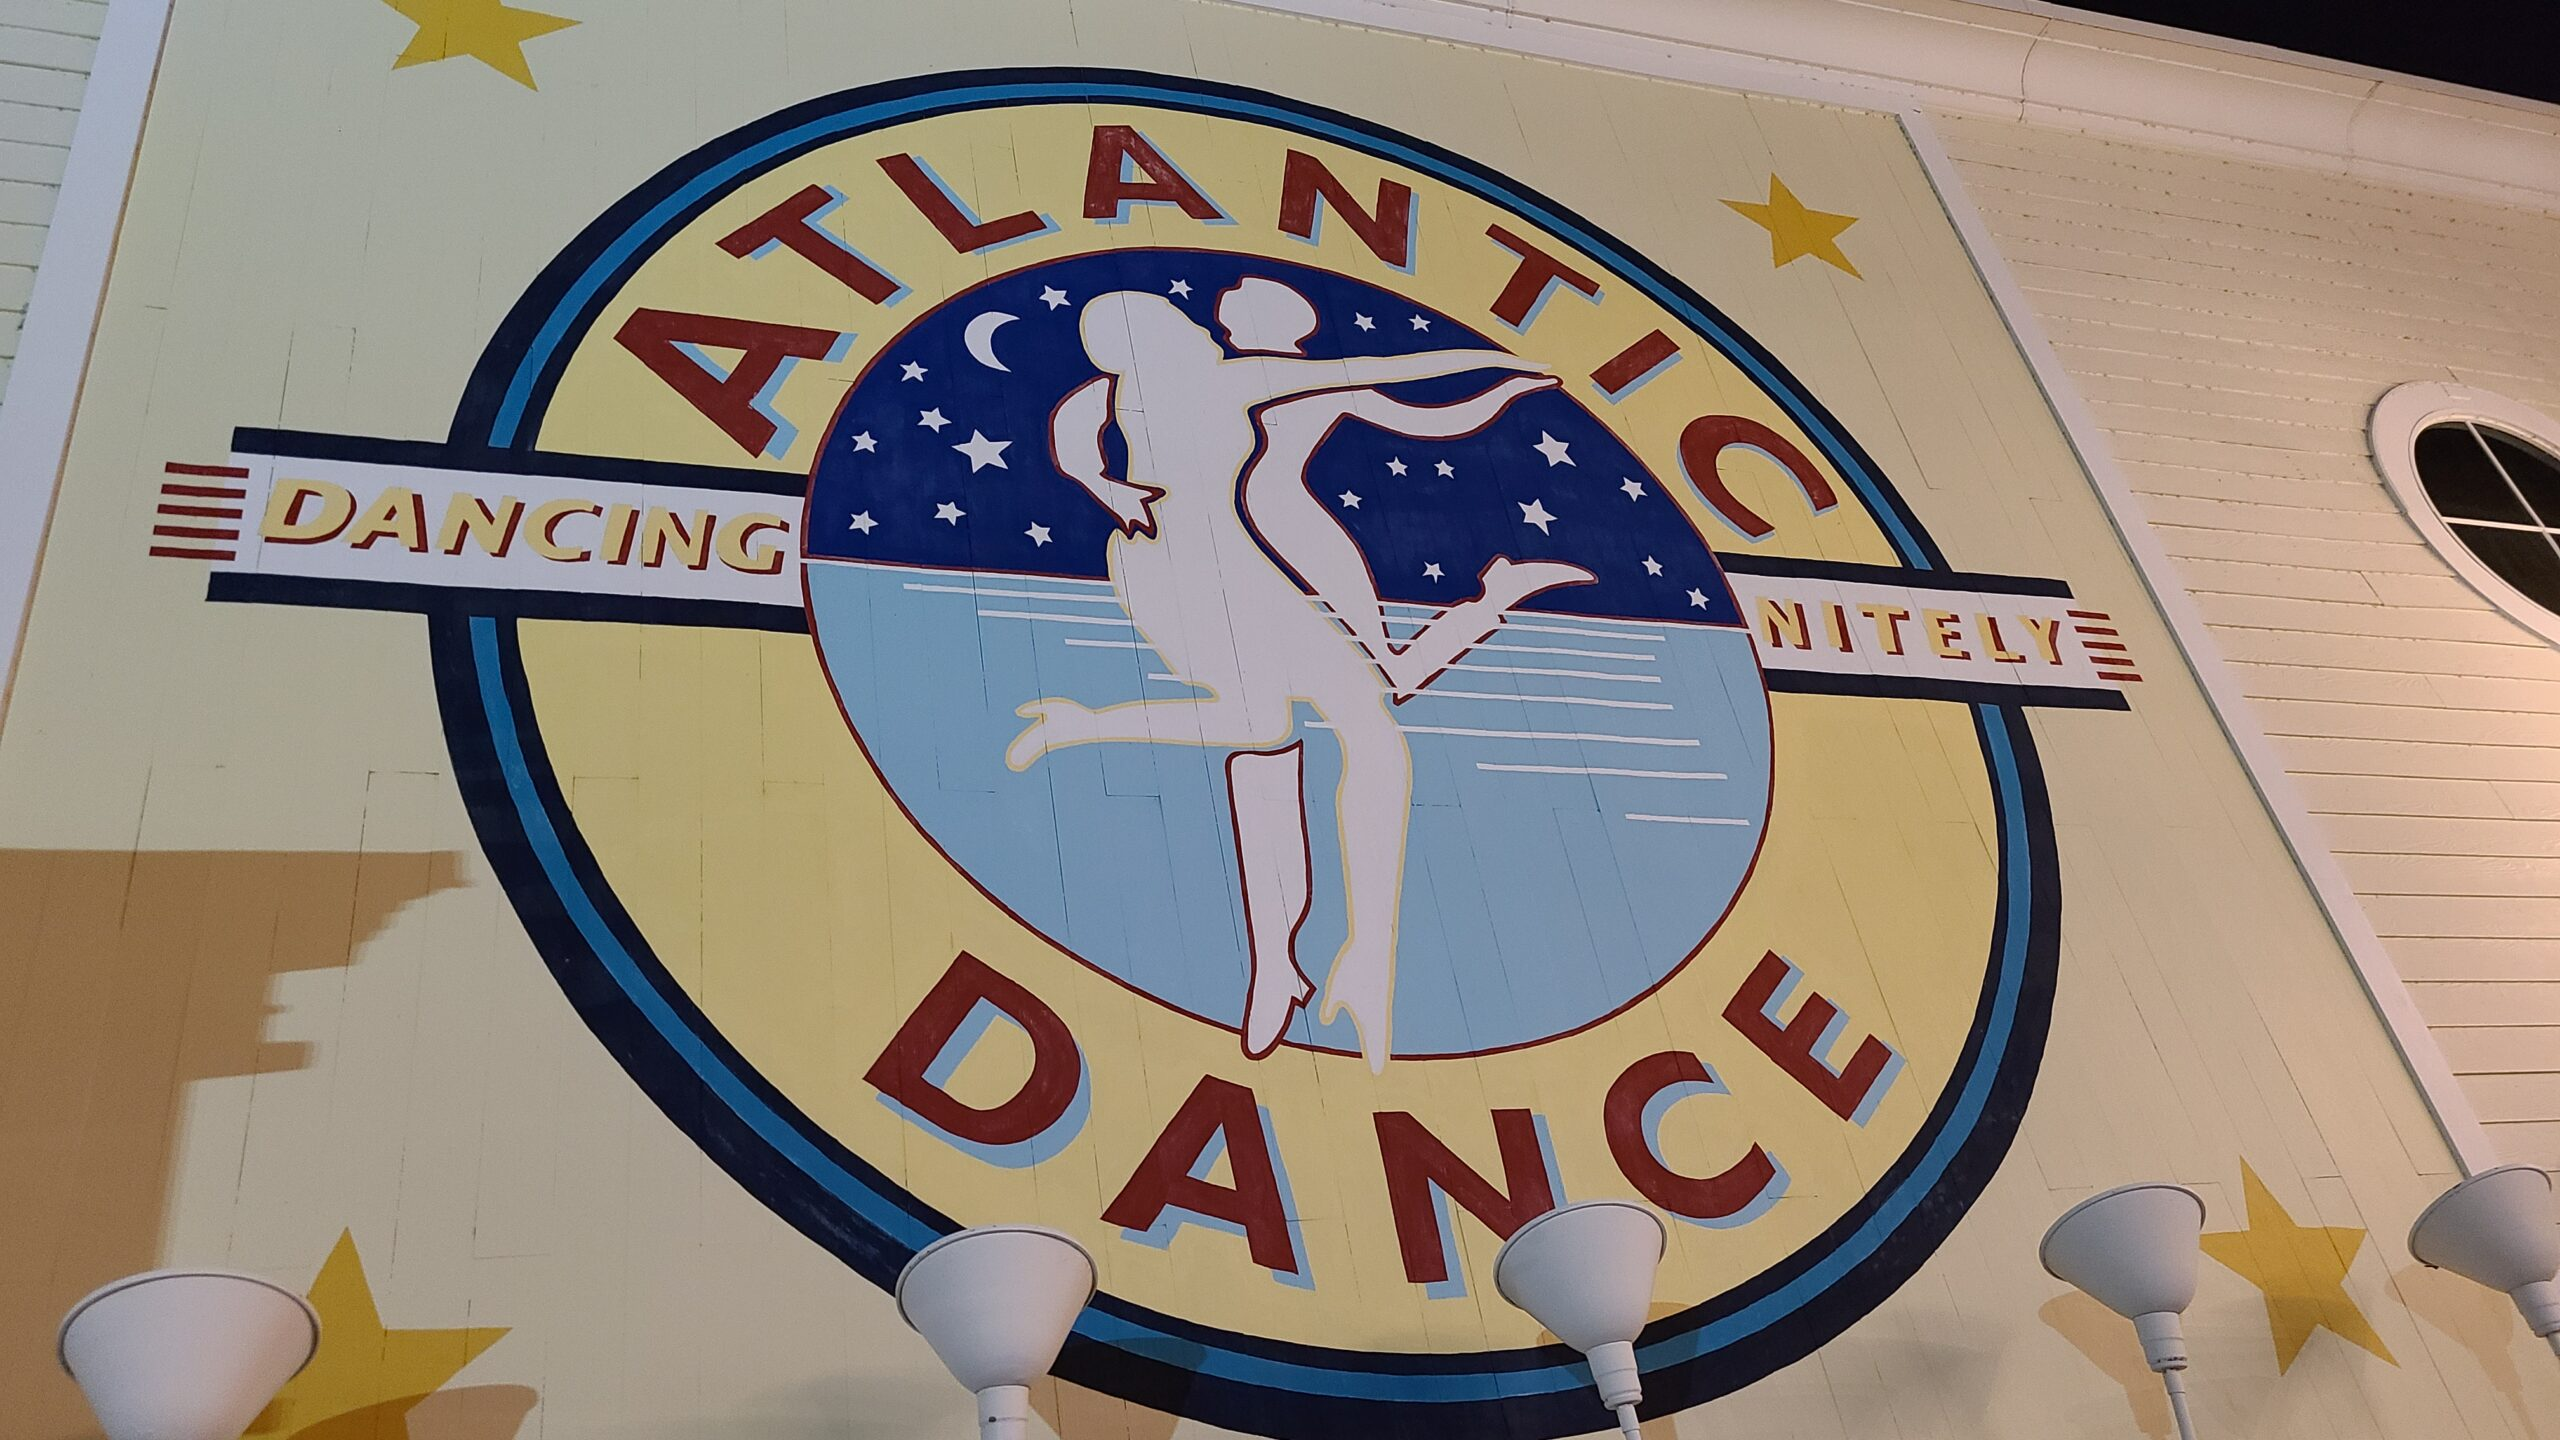 Atlantic Dance Hall reopening on August 6th 2